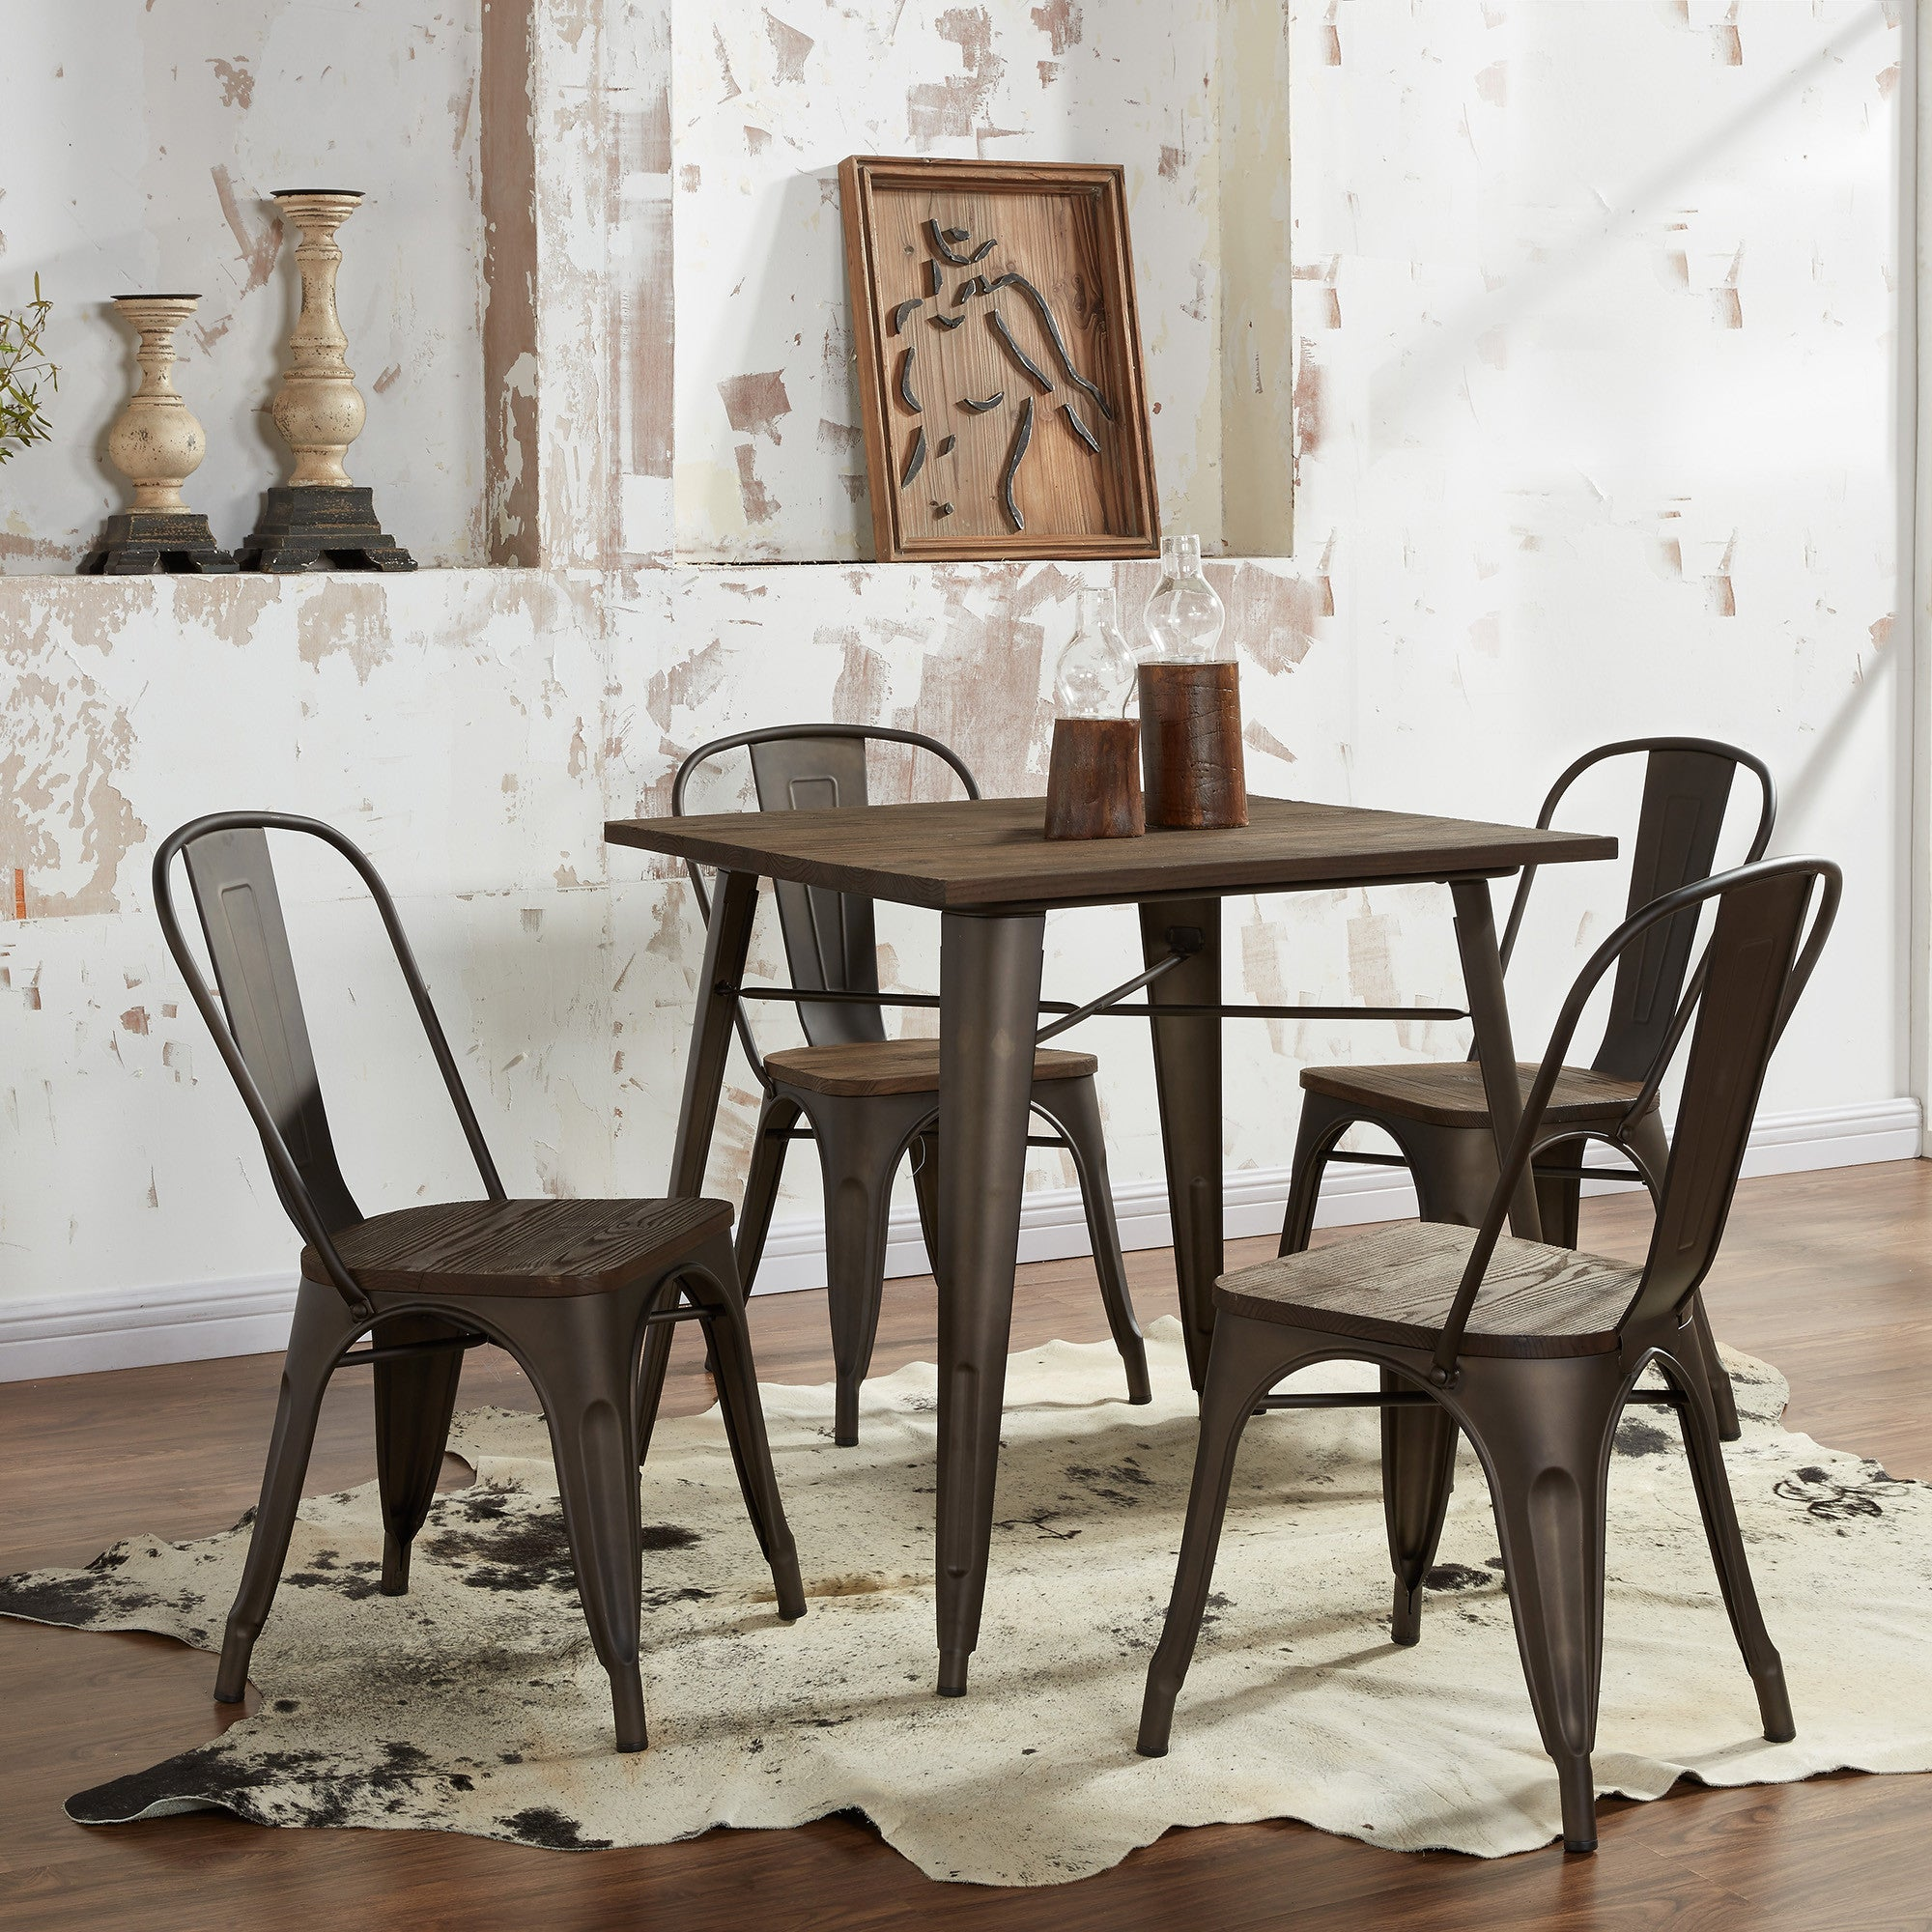 wood chair white room rustic cintra dining prm vcid